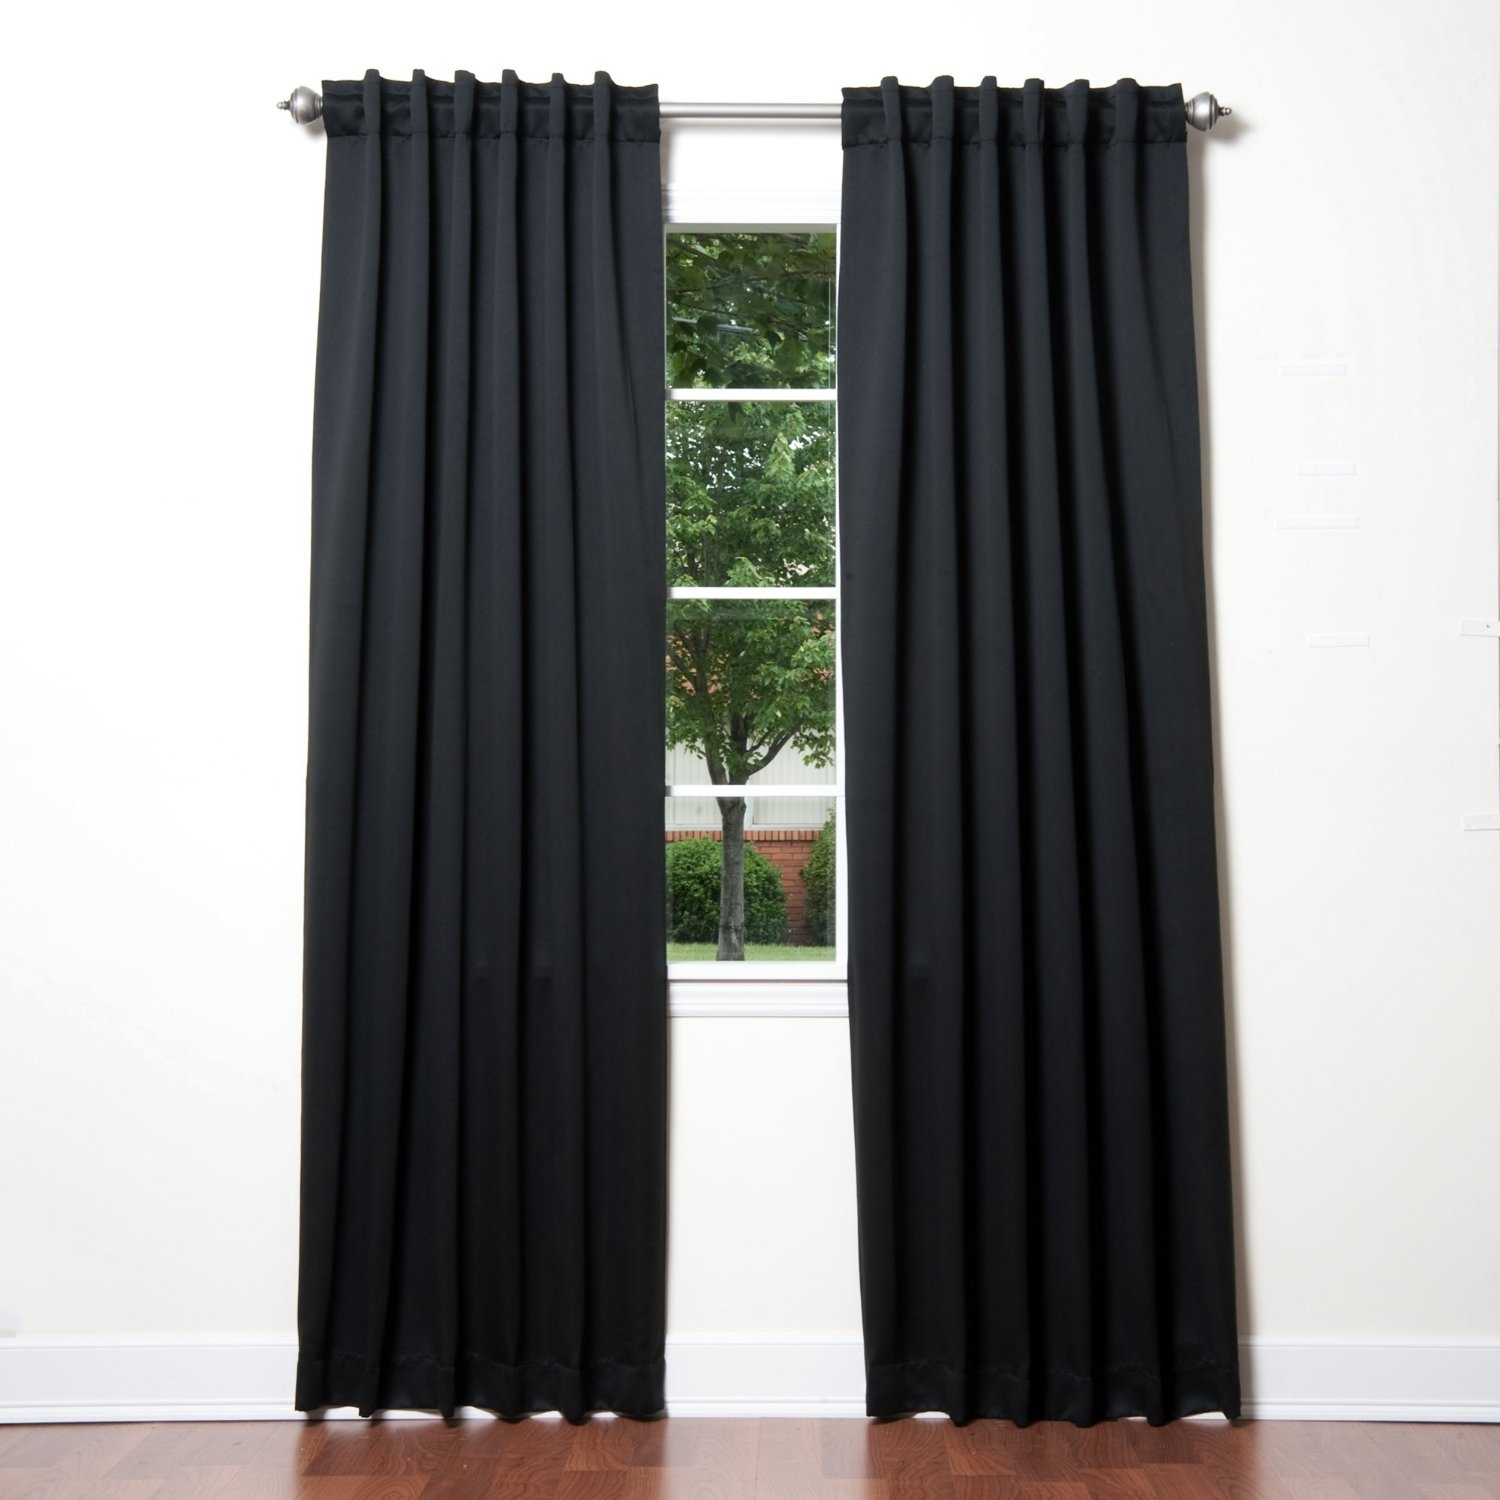 Amazon Best Home Fashion Thermal Insulated Blackout Curtains With Hotel Quality Blackout Curtains (Image 3 of 15)